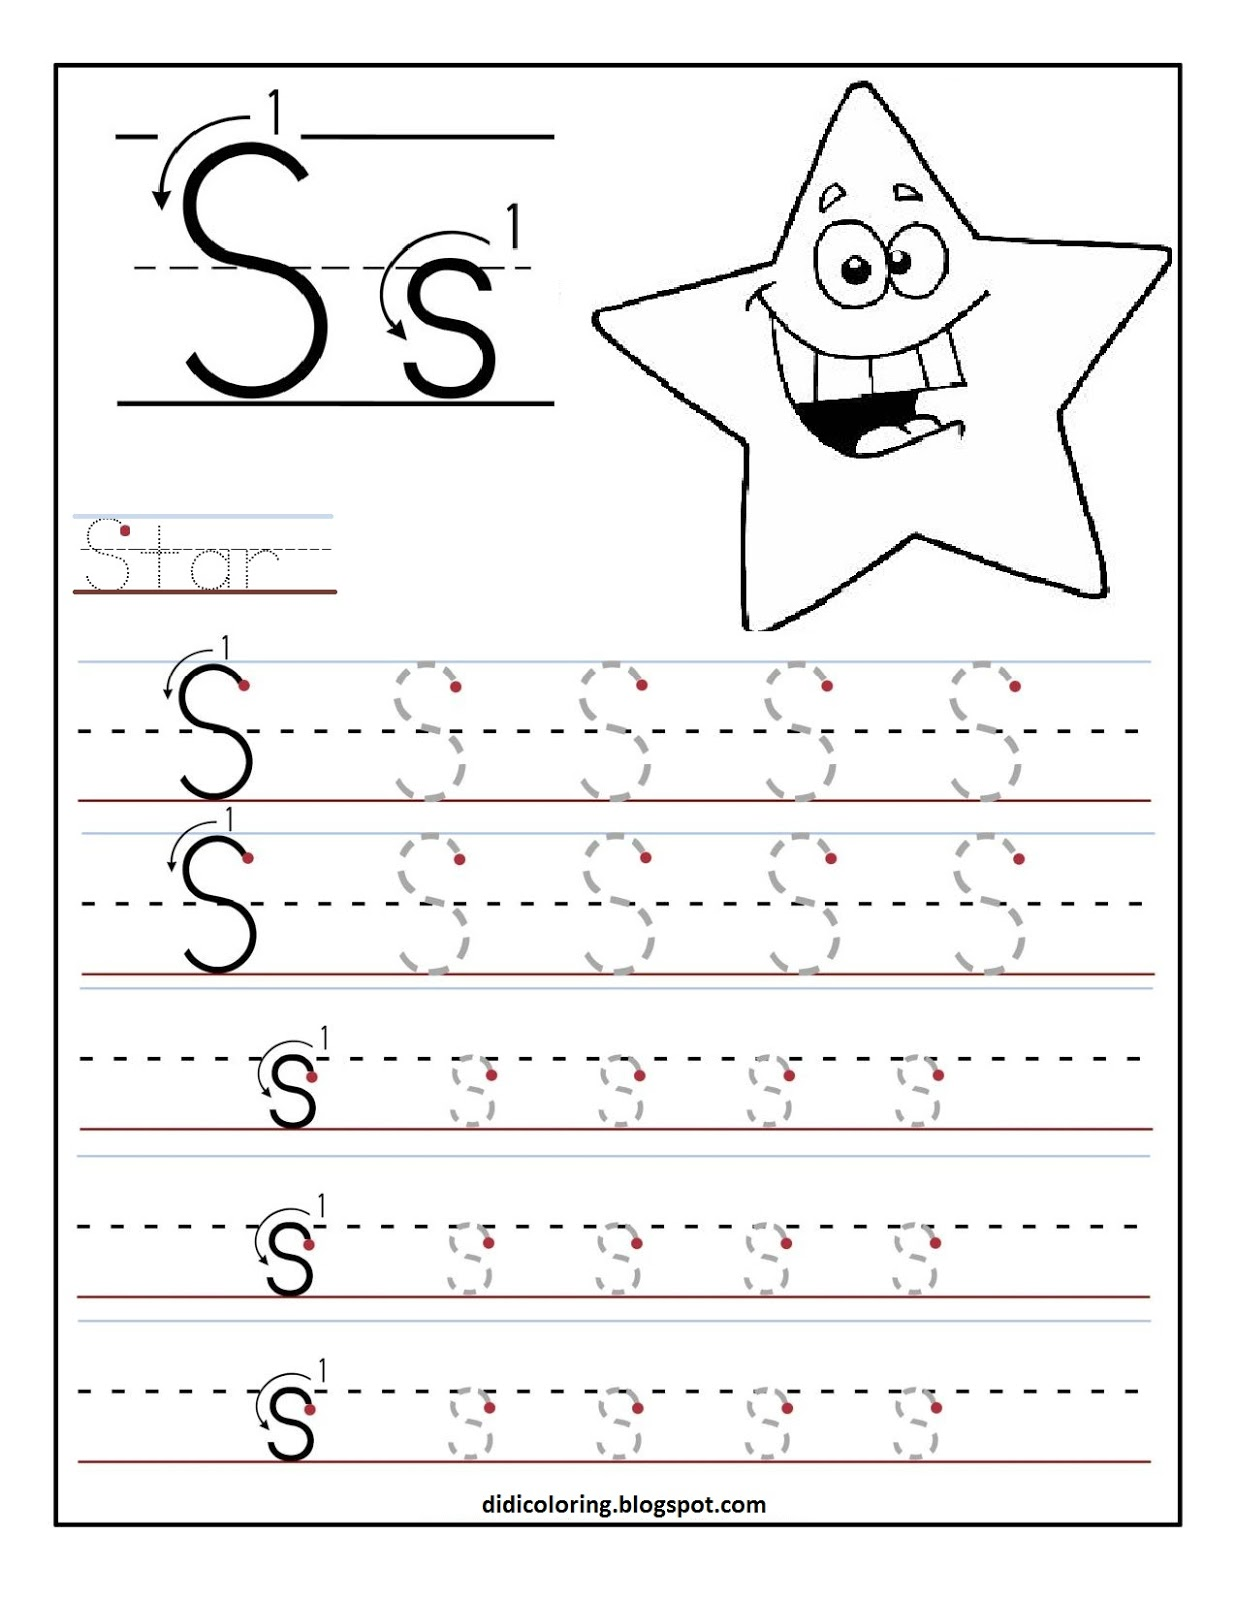 Worksheets S Worksheet free printable worksheet letter s for your child to learn and write write